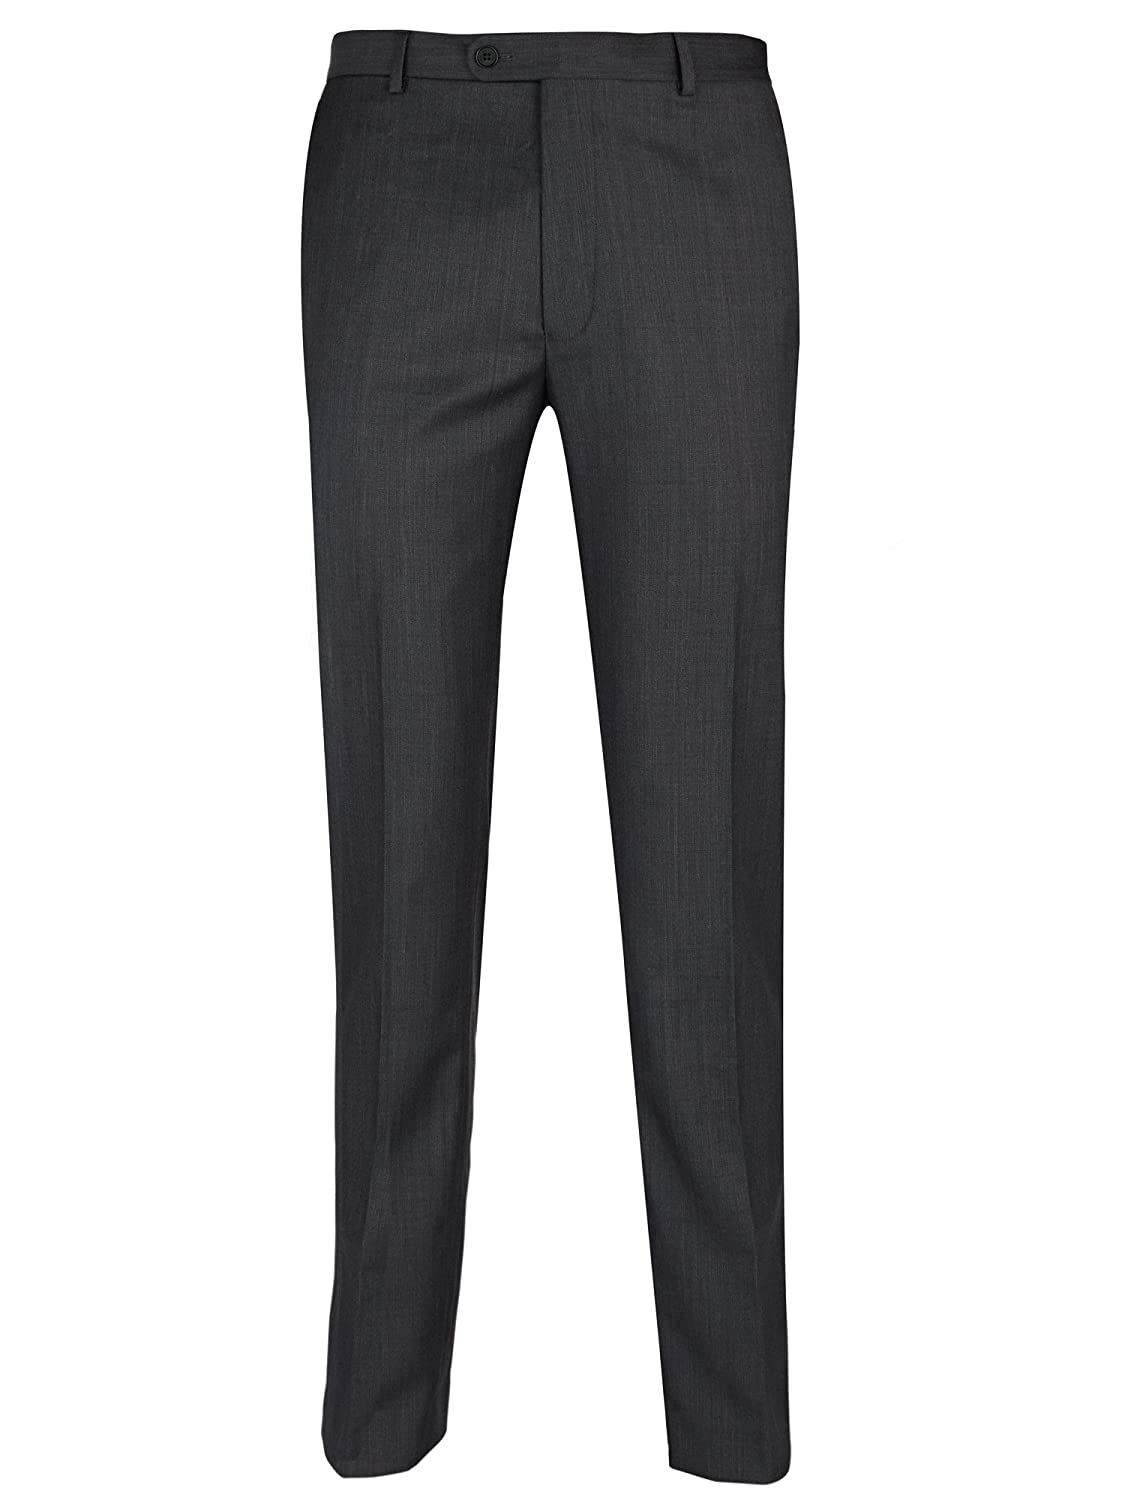 11a63d70bea1 Paul Costelloe Man Edgeware Wool Pick and Pick Suit Trousers 34S:  Amazon.co.uk: Clothing